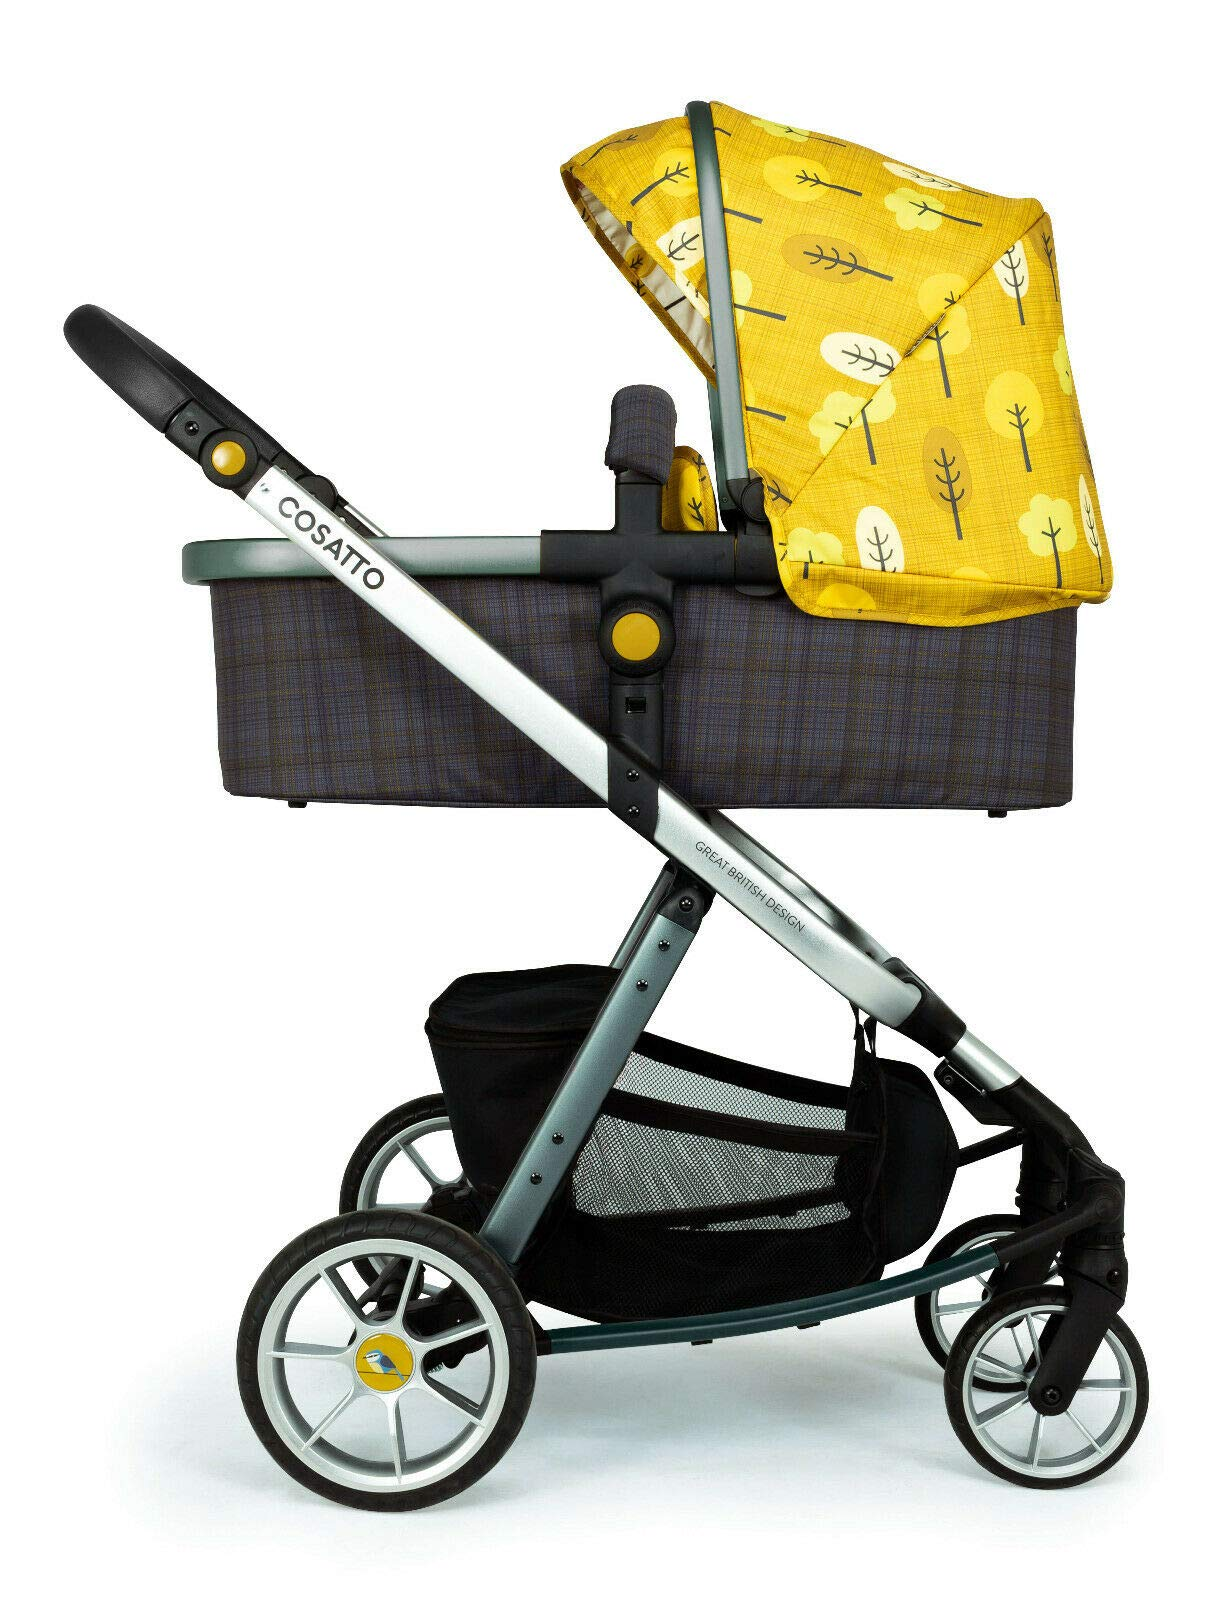 Cosatto Giggle Quad Pram & Pushchair Spot The Birdie Cosatto Enhanced performance. unique tyre material and all-round premium suspension give air-soft feel. Comfy all-round. spacious carrycot for growing babies.  washable liner. reversible reclining seat. Ultimate buy. tested up to a mighty 20kg for even longer use. big 3.5kg capacity basket for big shop 2